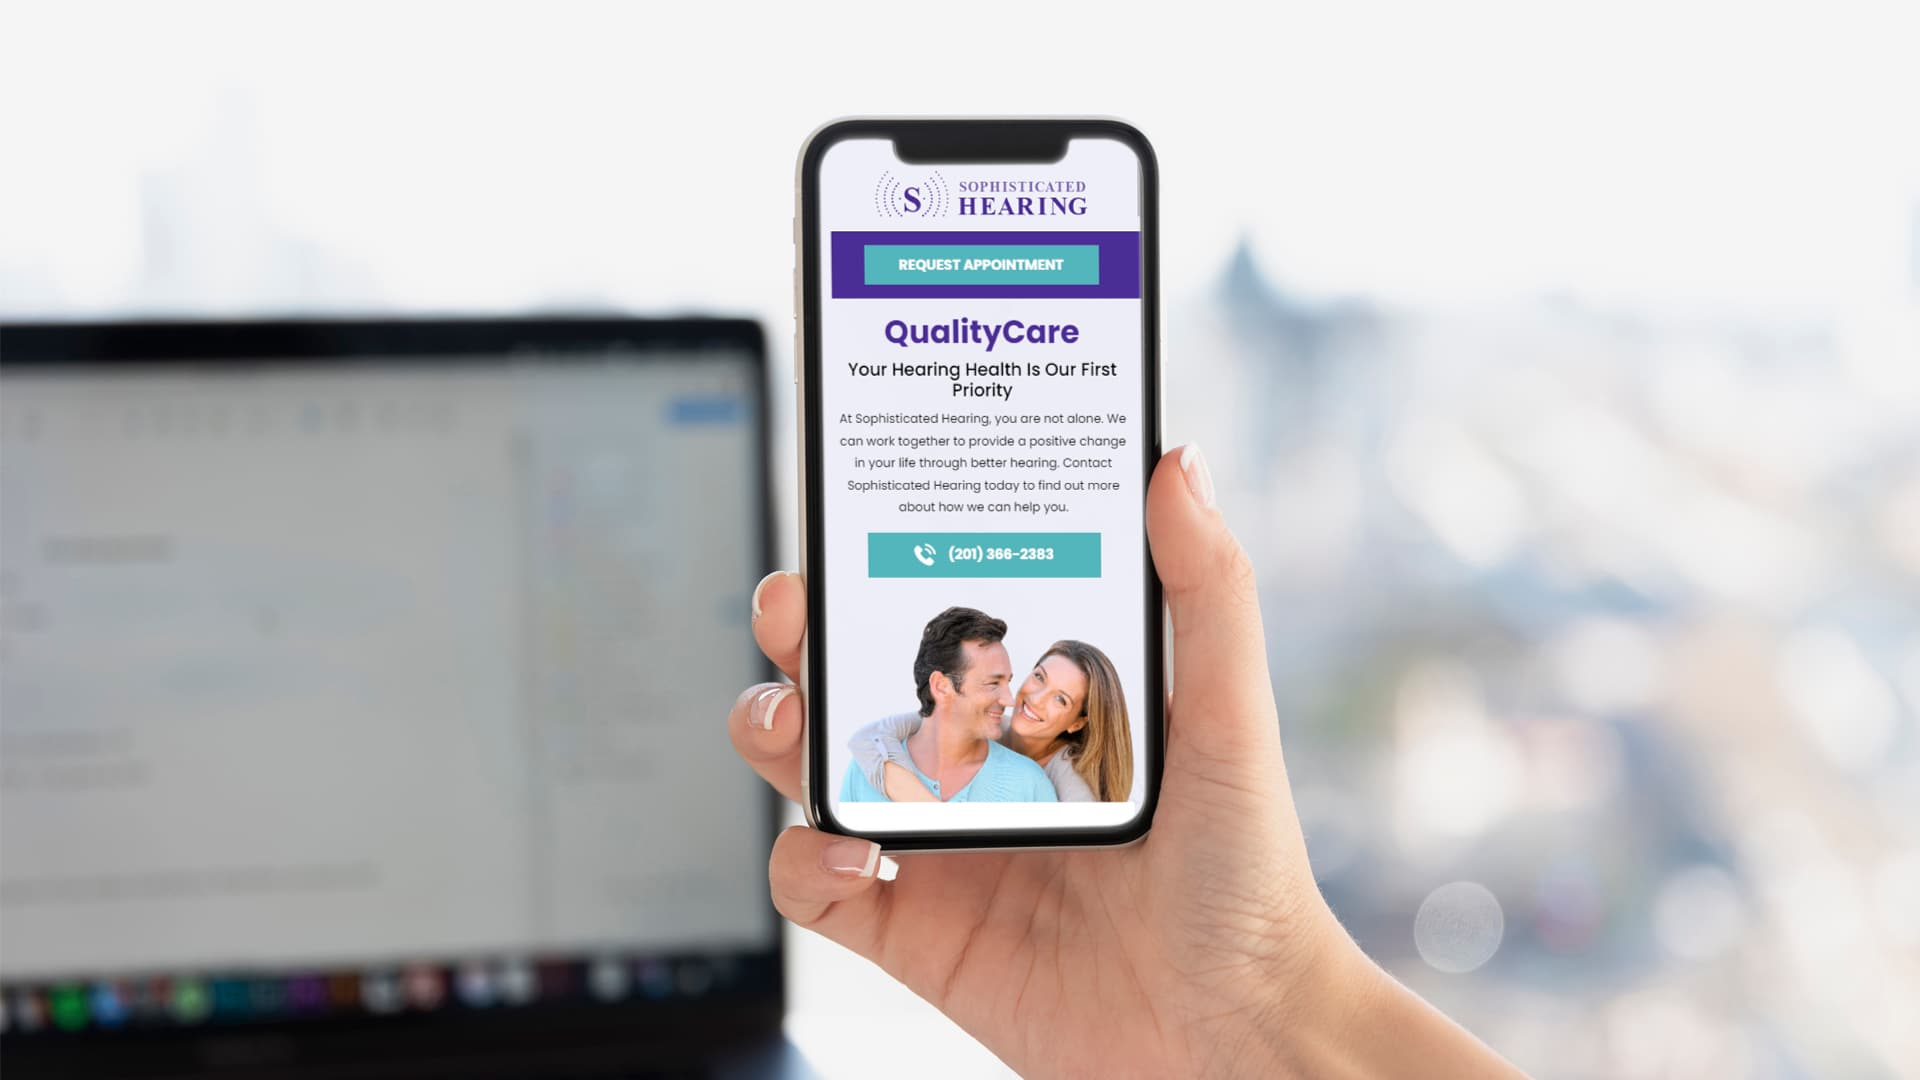 SEO & PPC Medical & Healthcare: Sophisticated Hearing QualityCare, in Mobile